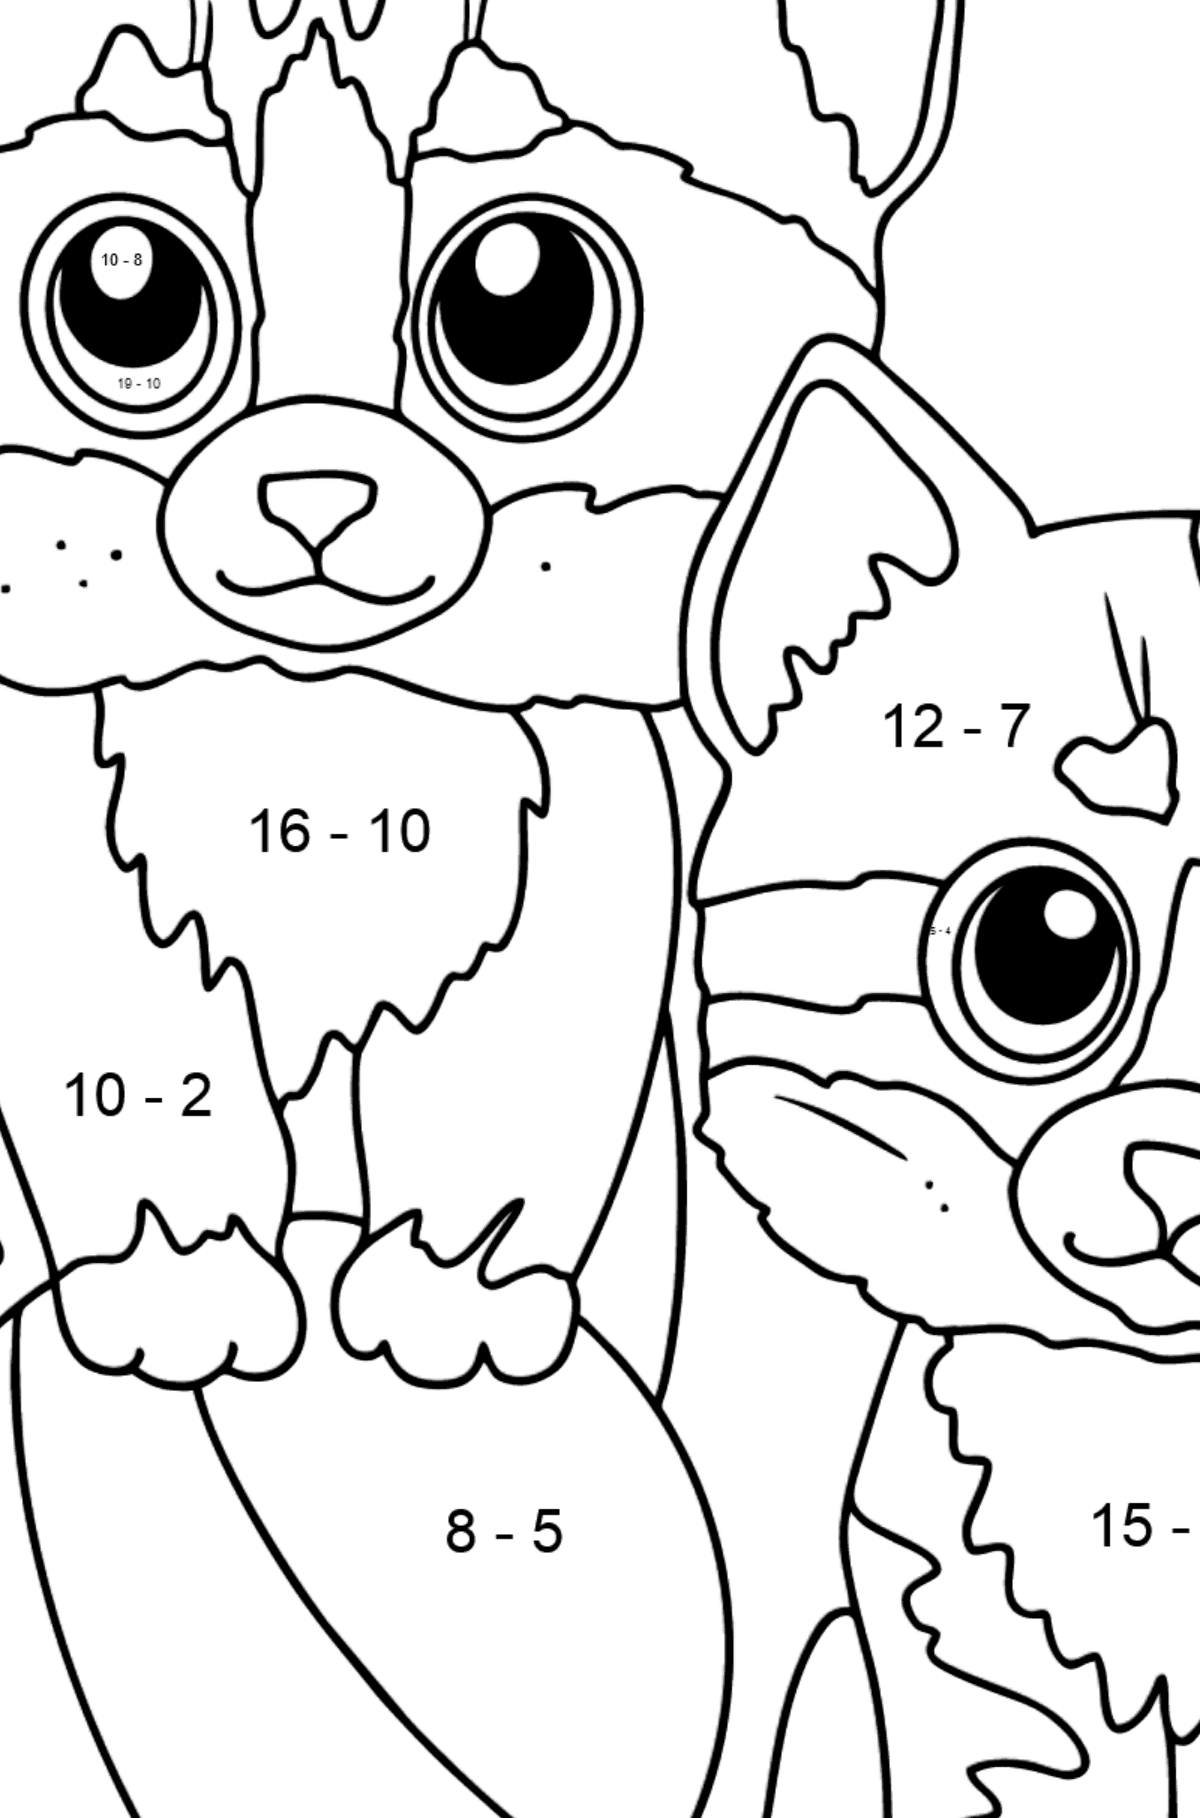 Coloring Page - Two Friendly Kittens Playing with a Ball - Math Coloring - Subtraction for Kids